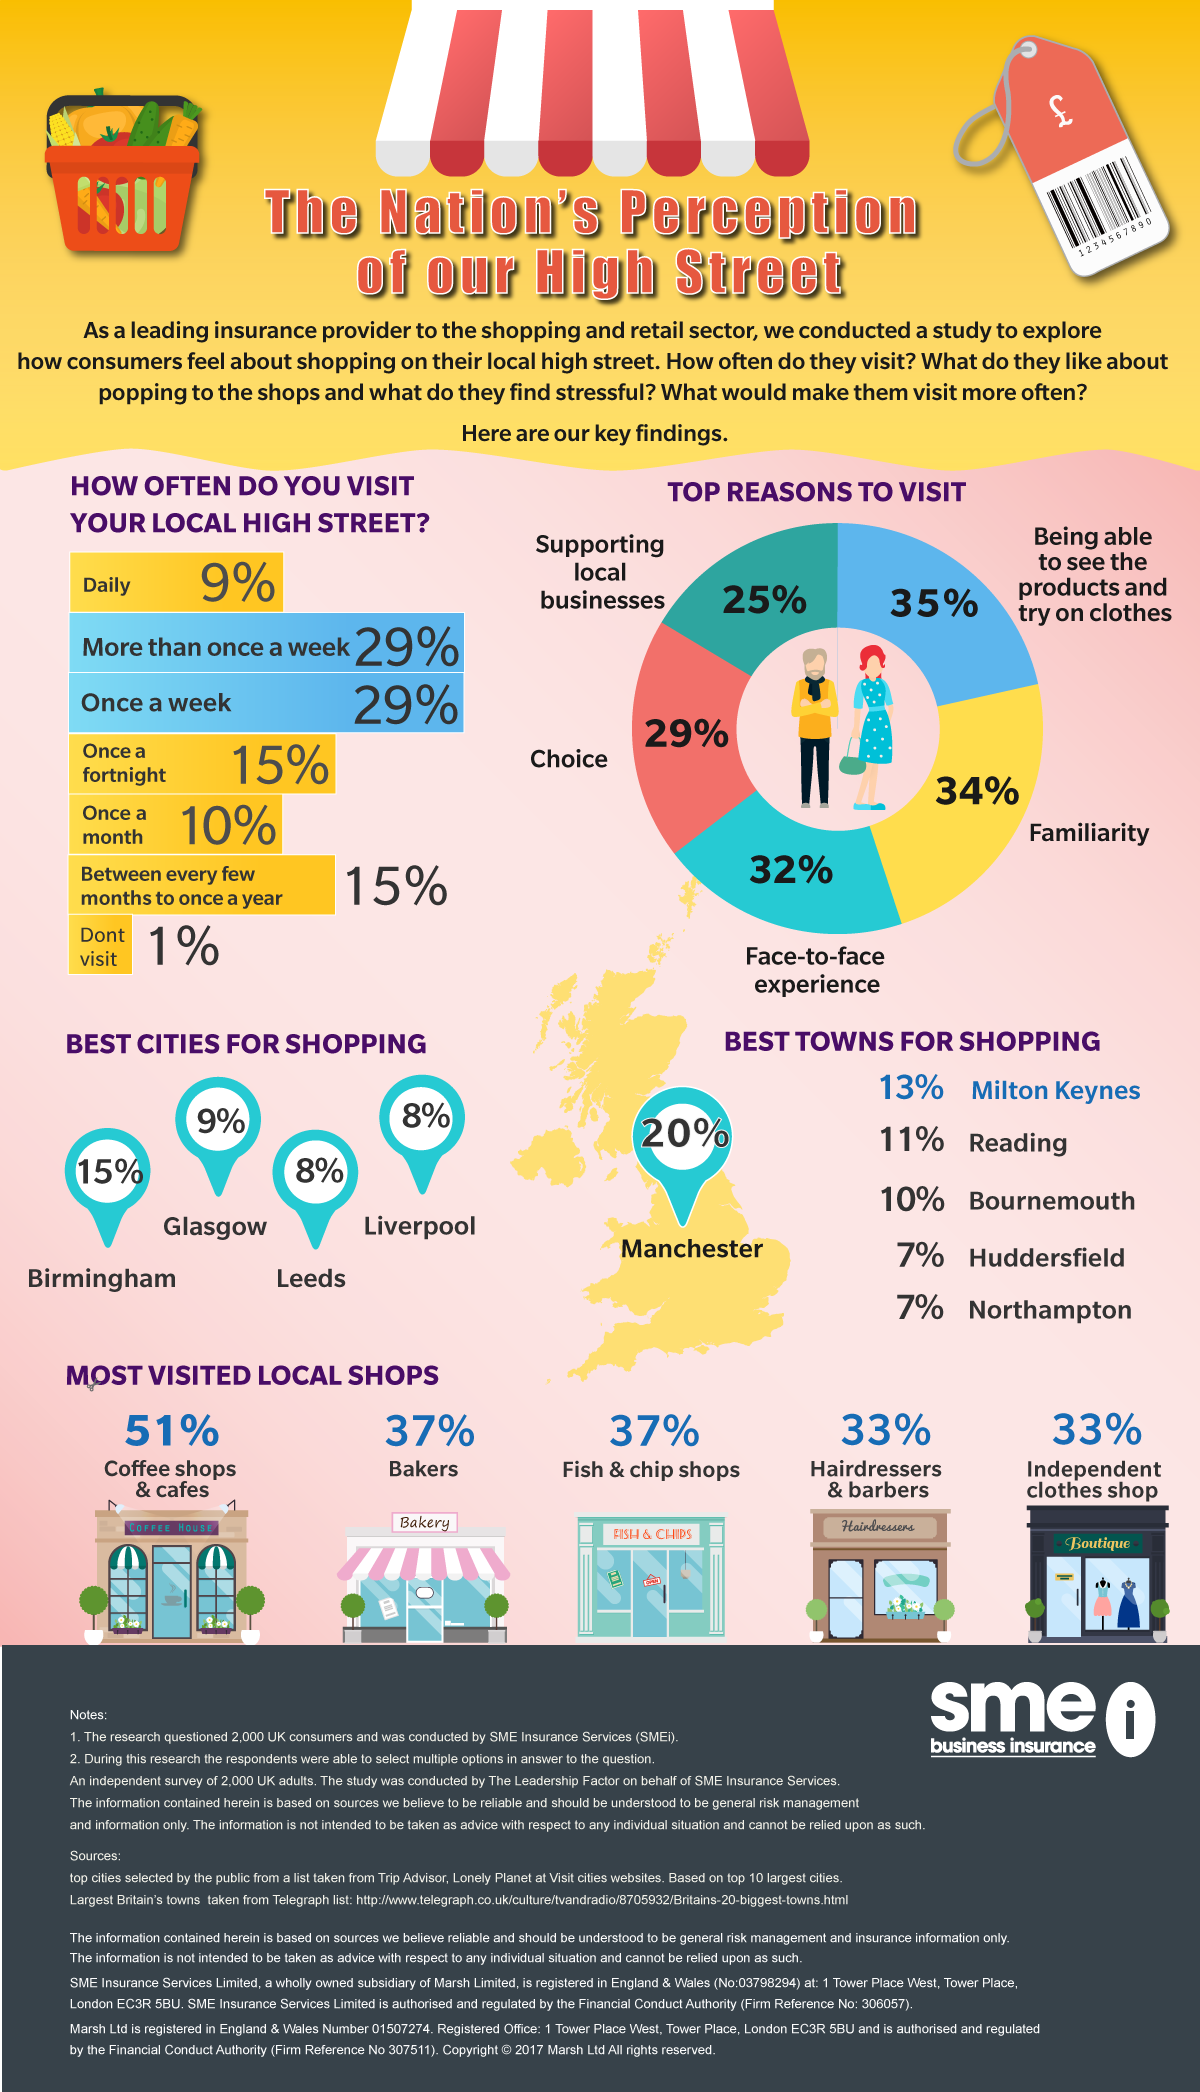 The Nation's Perception of our High Street - Part 2